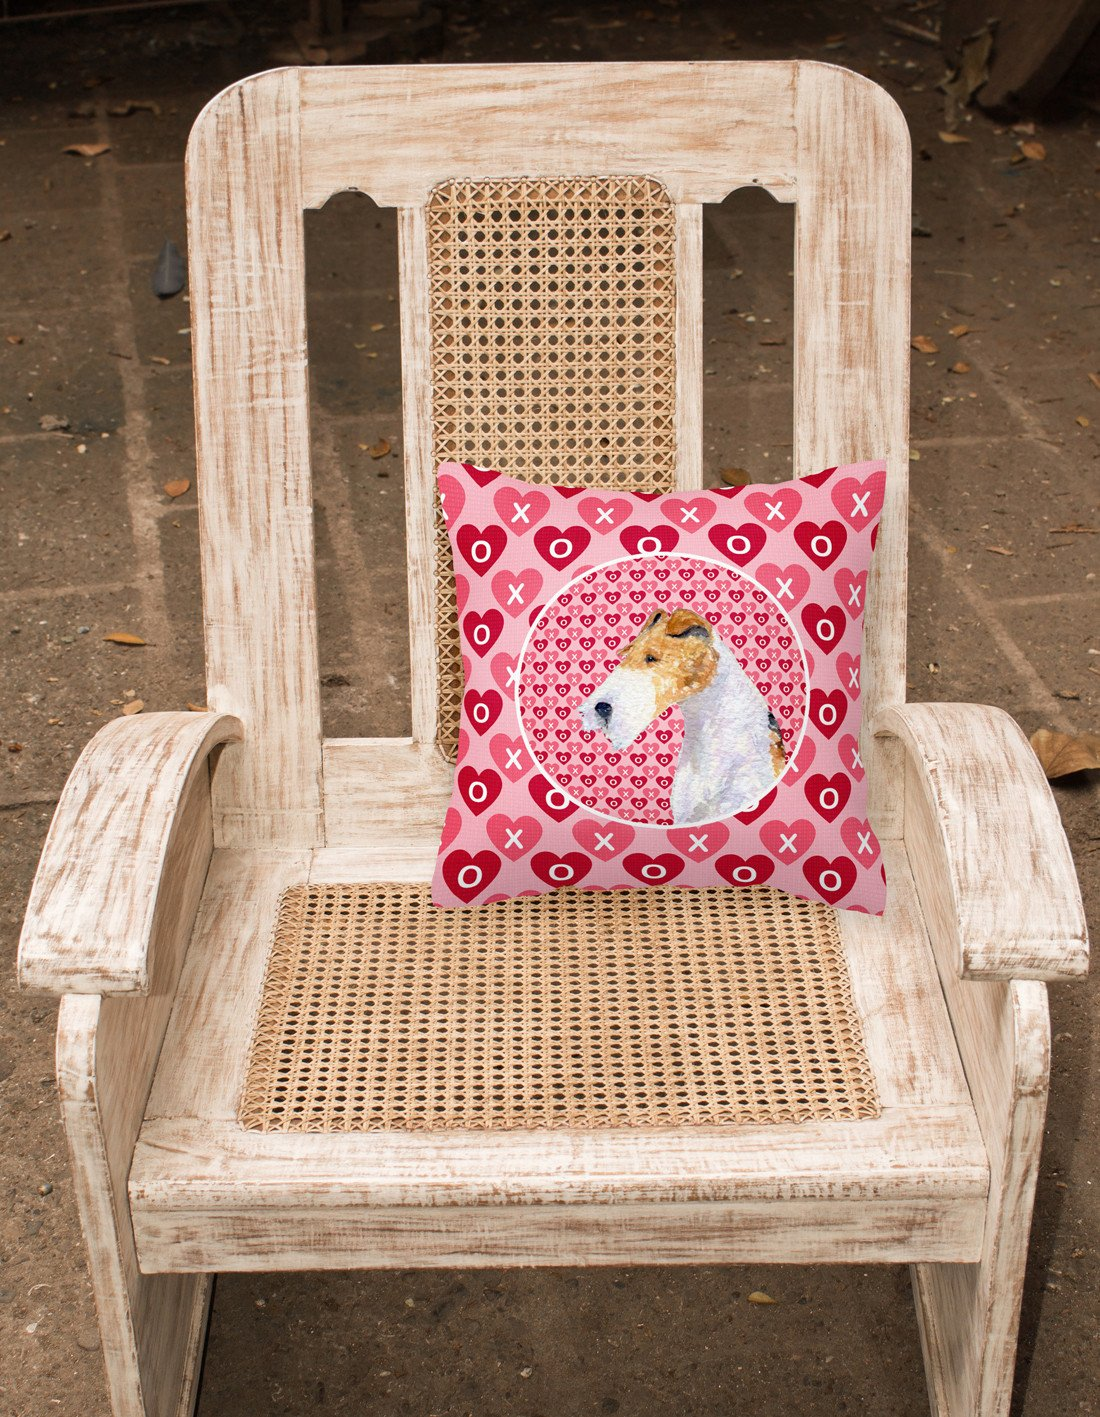 Fox Terrier Hearts Love and Valentine's Day Portrait Fabric Decorative Pillow SS4478PW1414 by Caroline's Treasures